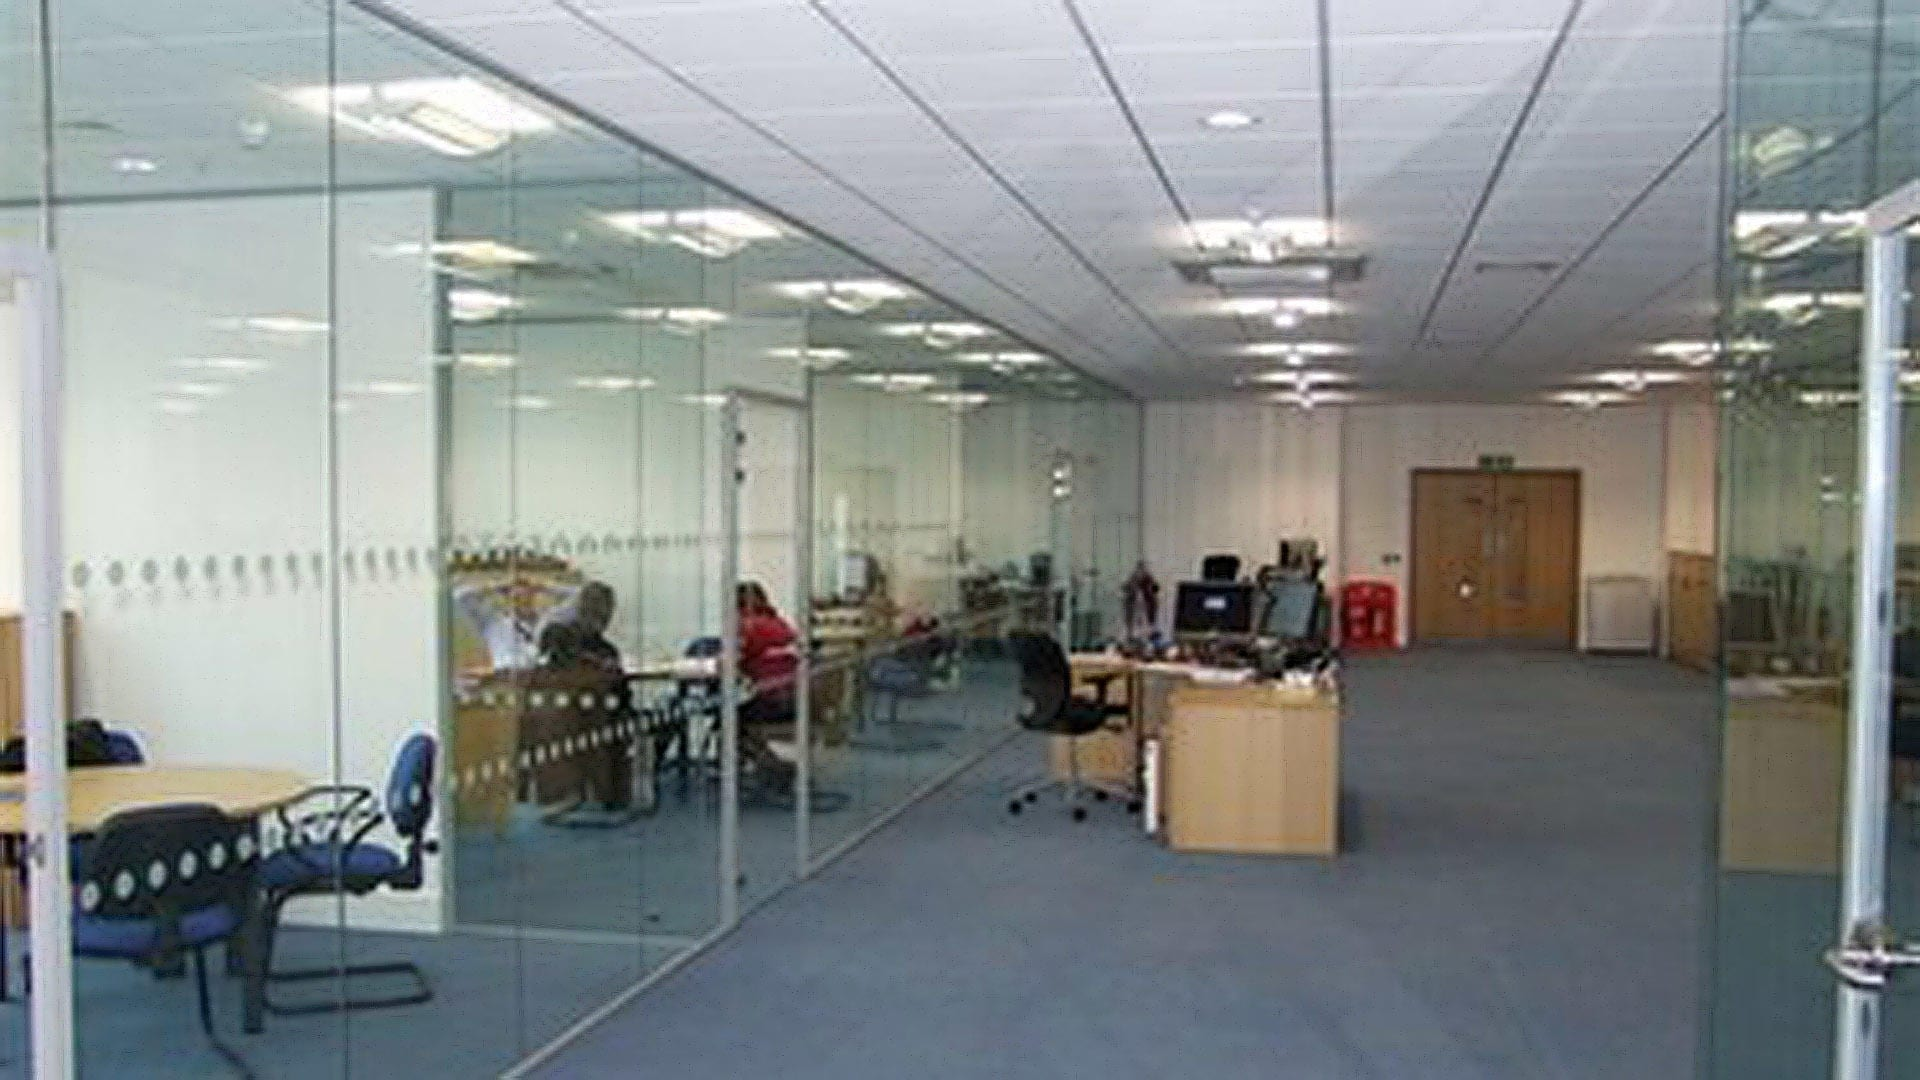 cobham_plc_interiordesign_spaceuk2